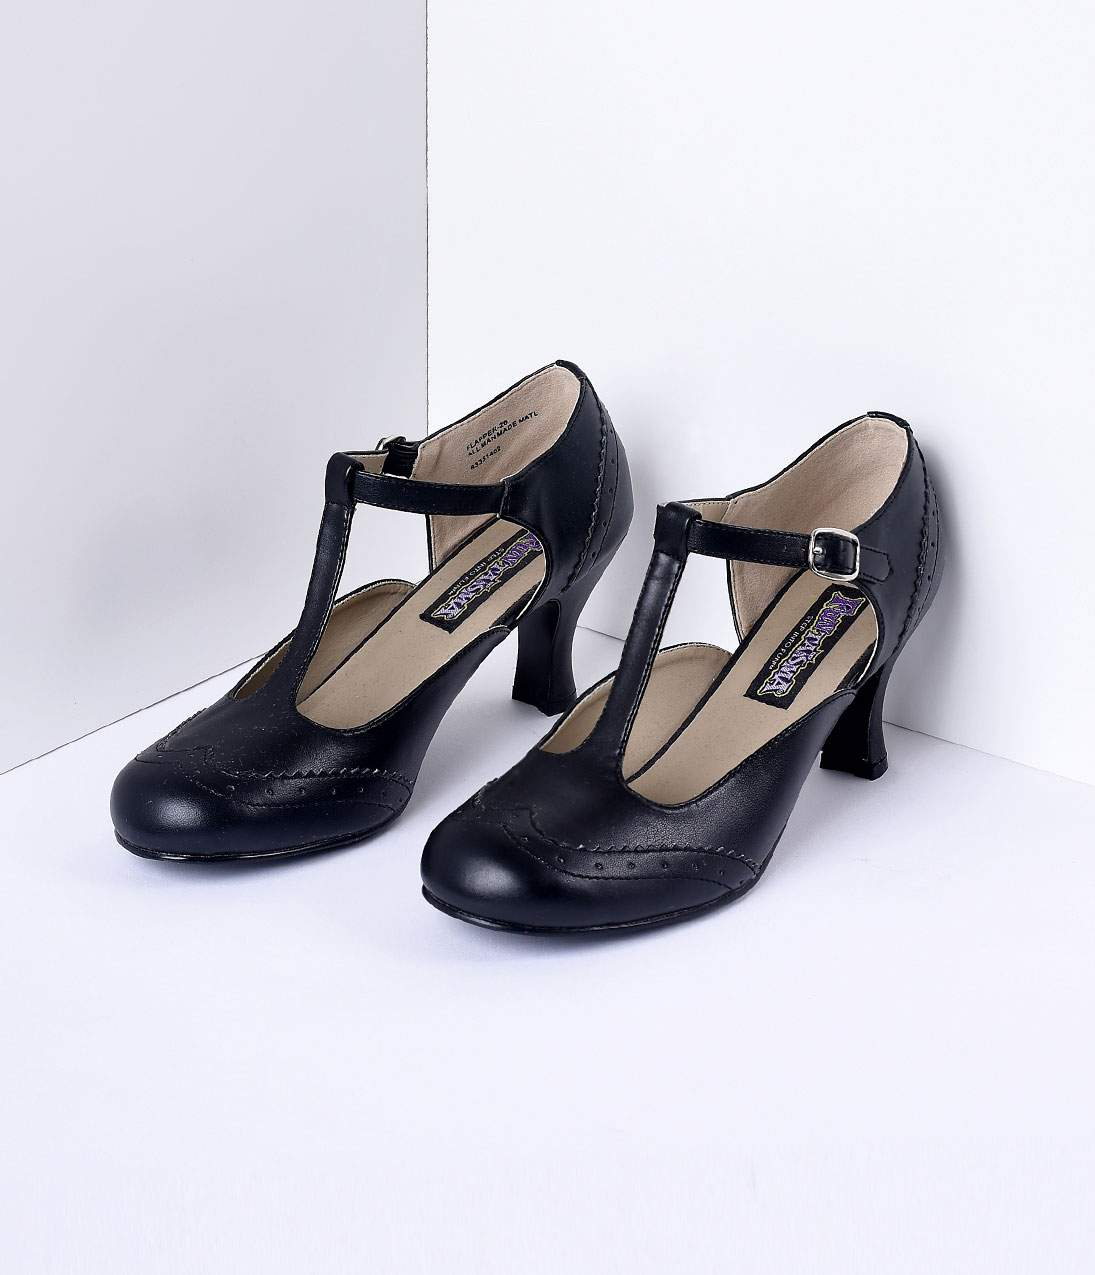 Black T-Strap Mary Jane Kitten Heels 596979db3321